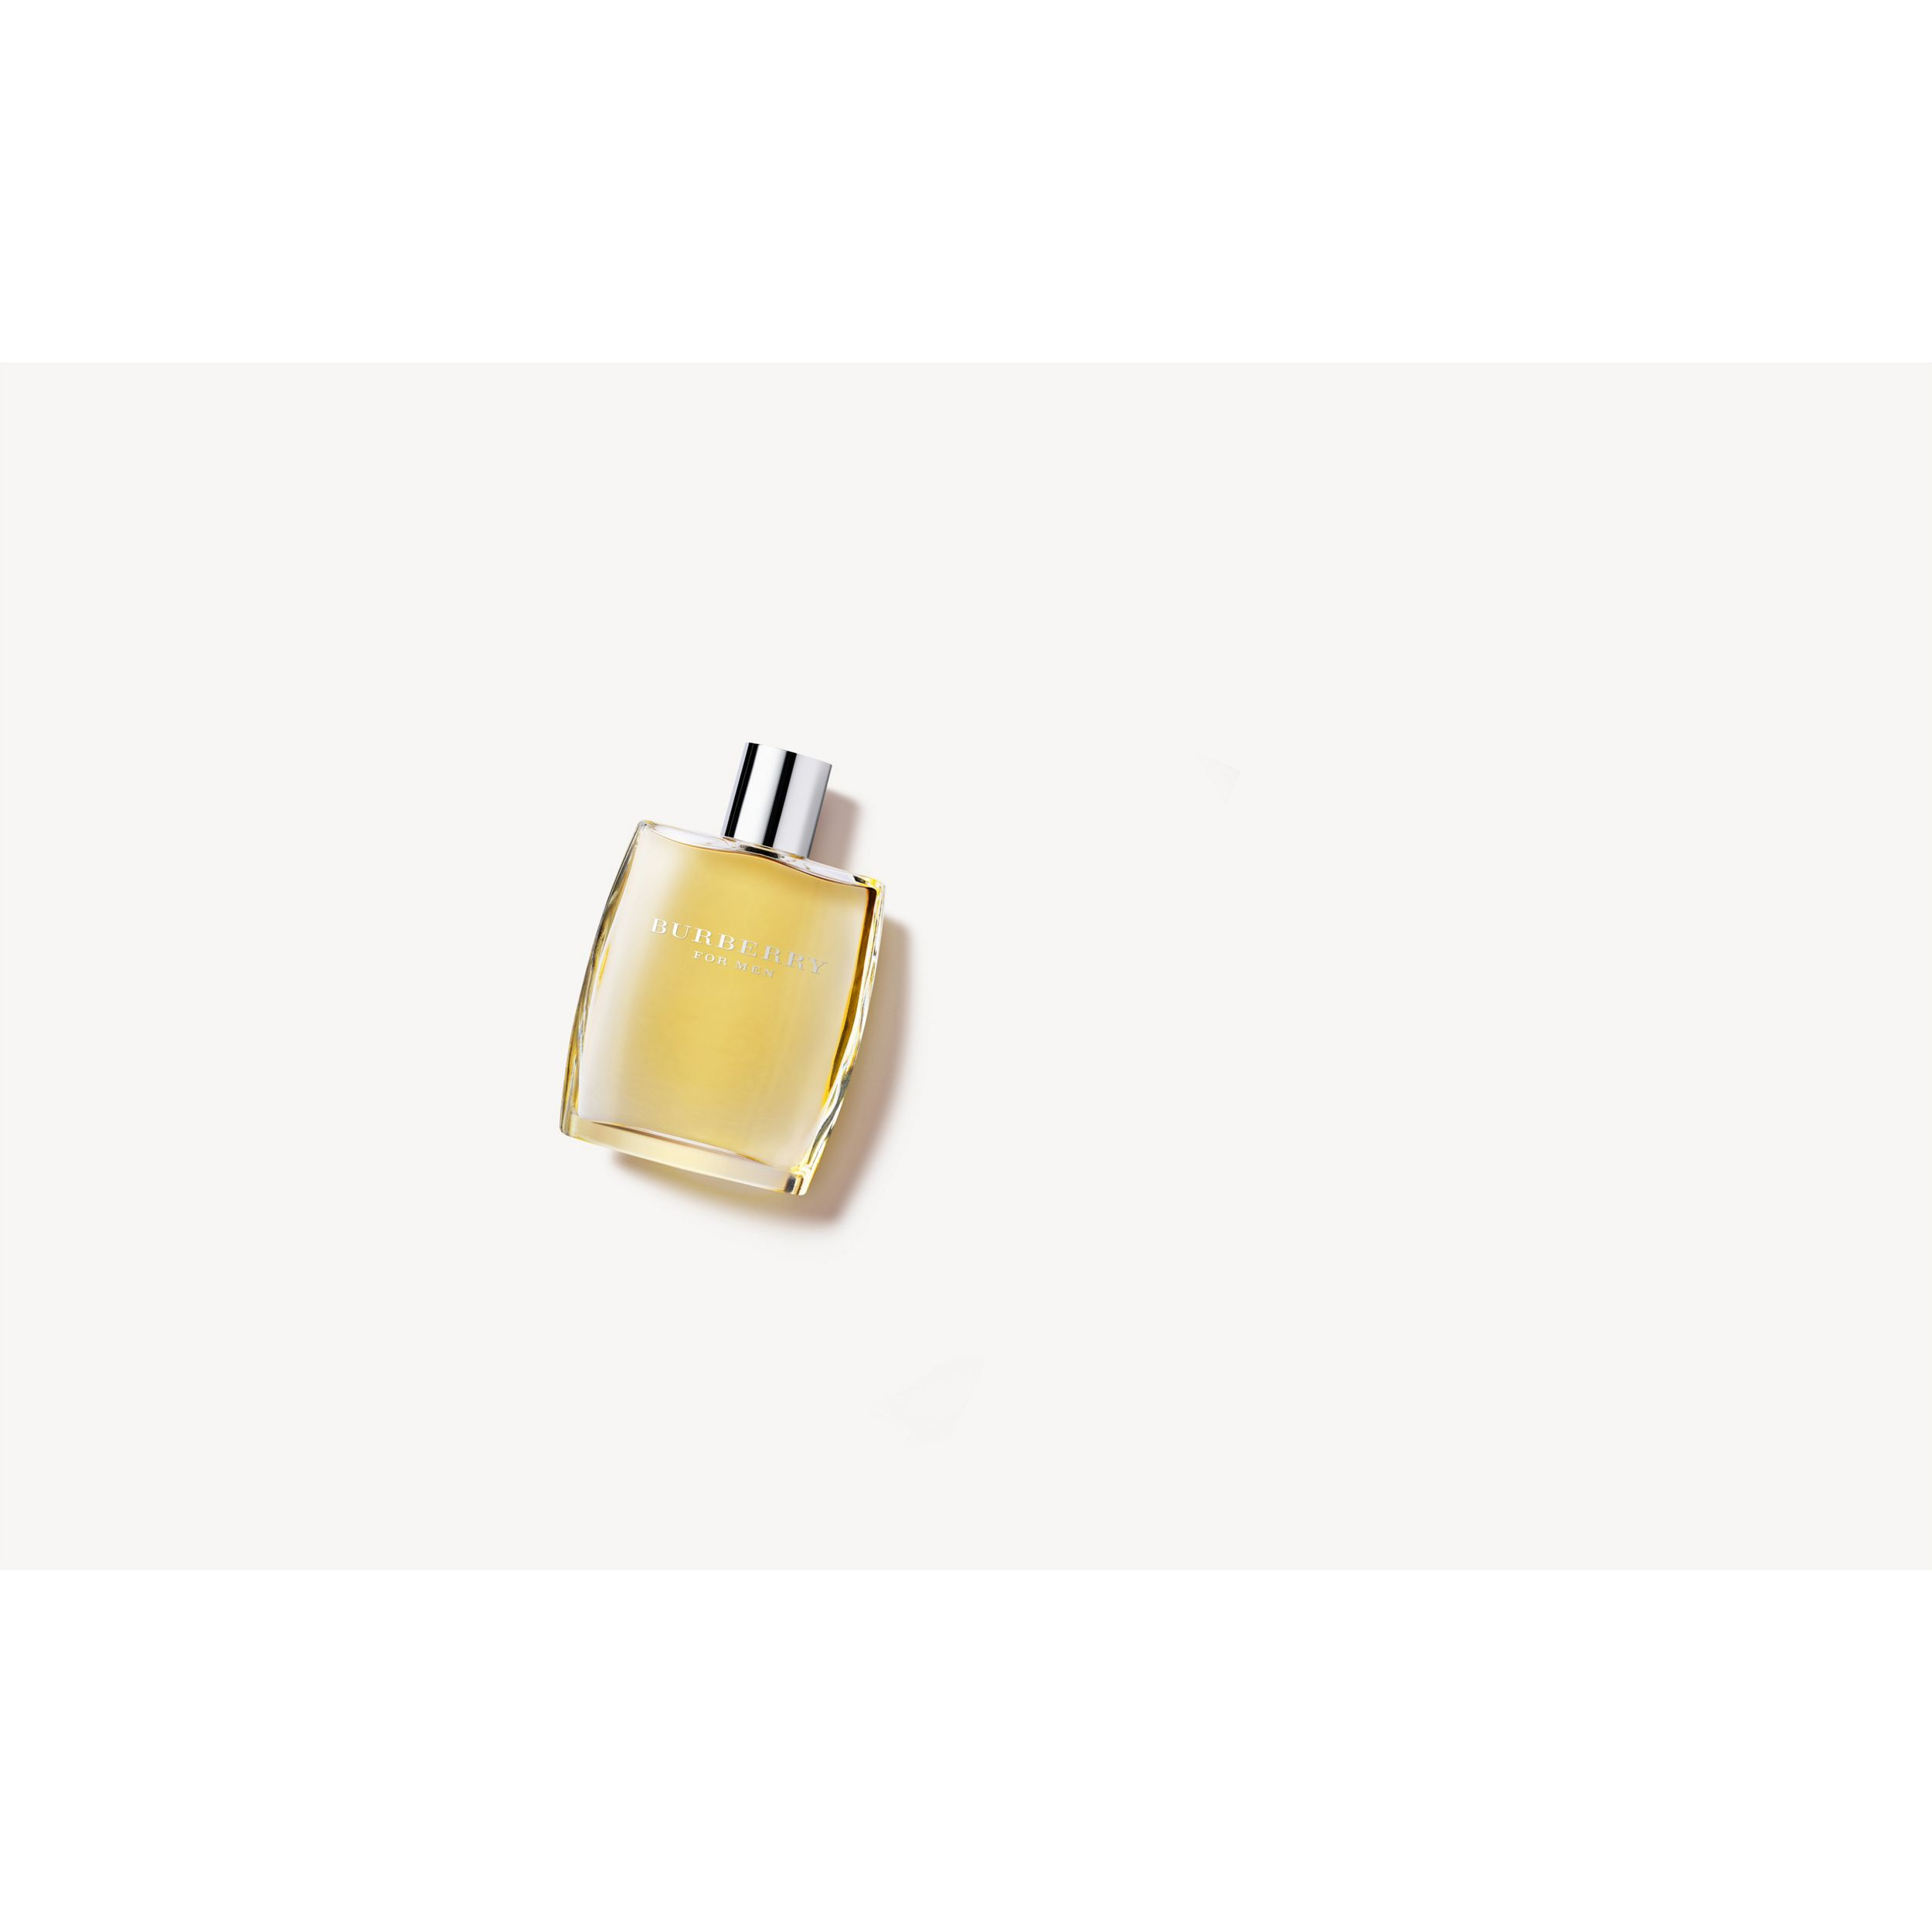 Burberry For Men Eau de Toilette 100ml - Men | Burberry - 2